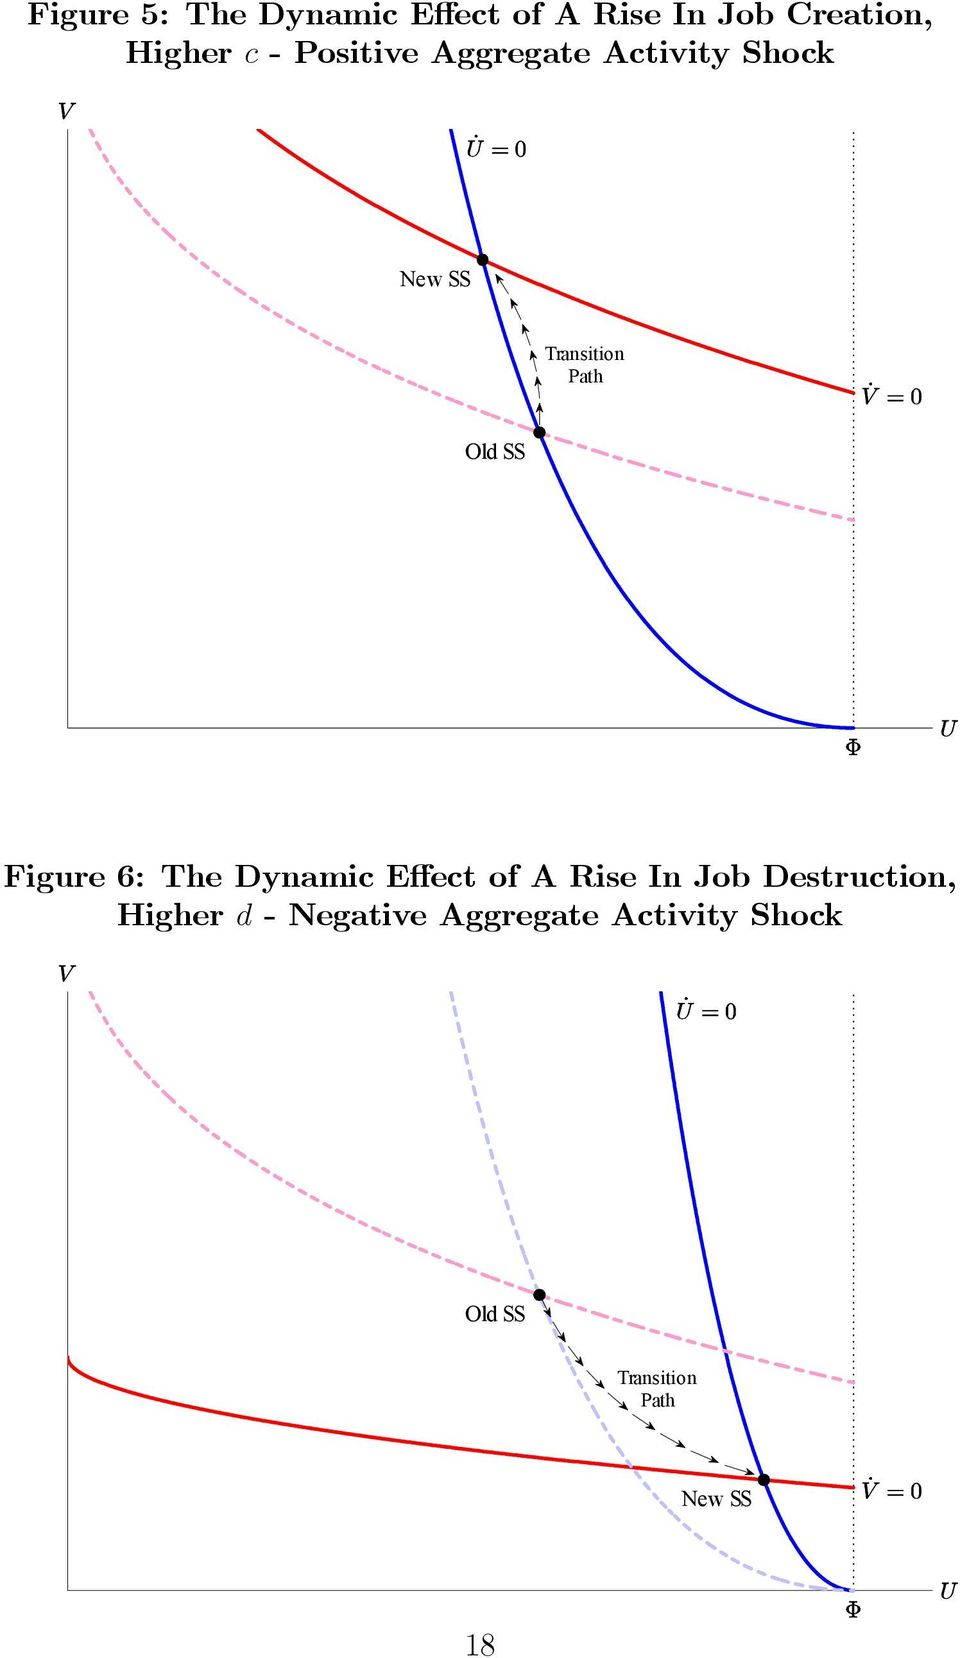 Figure 6: The Dynamic E ect of A Rise In Job Destruction, Higher d